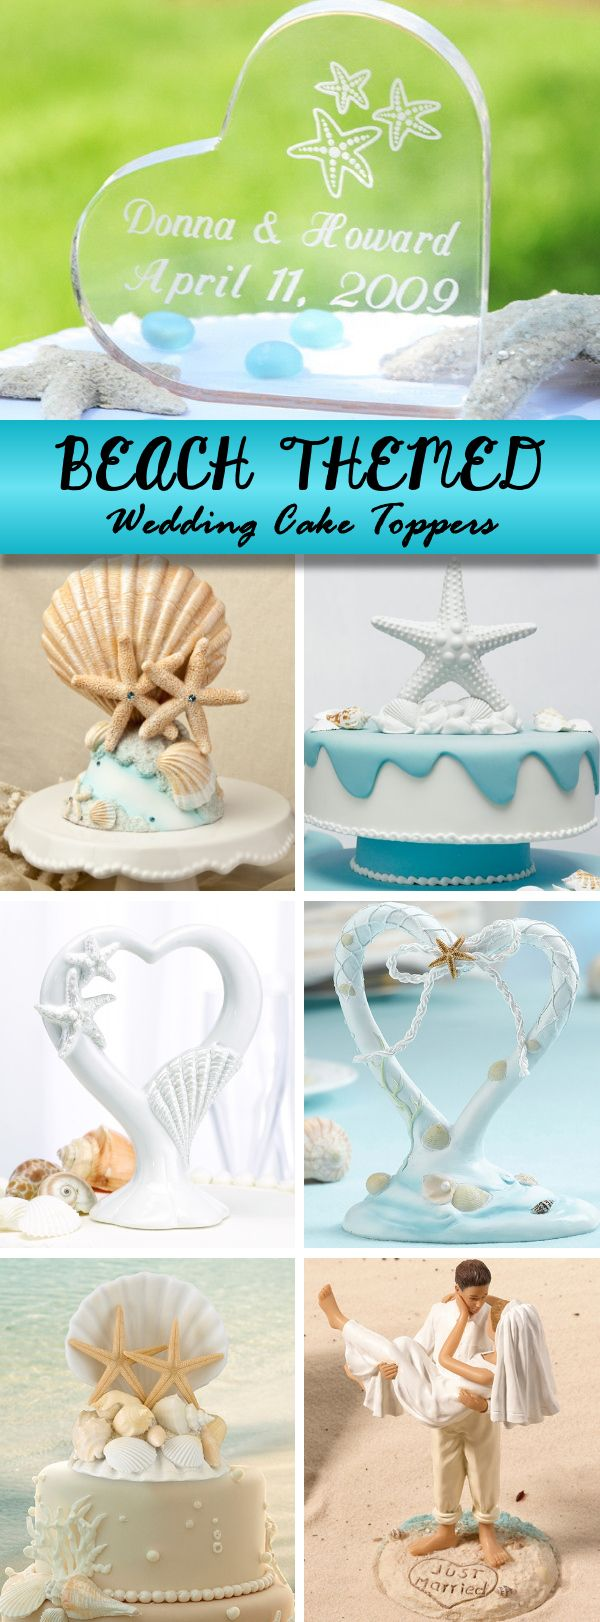 Our favorite beach themed wedding cake toppers! | Beach ...